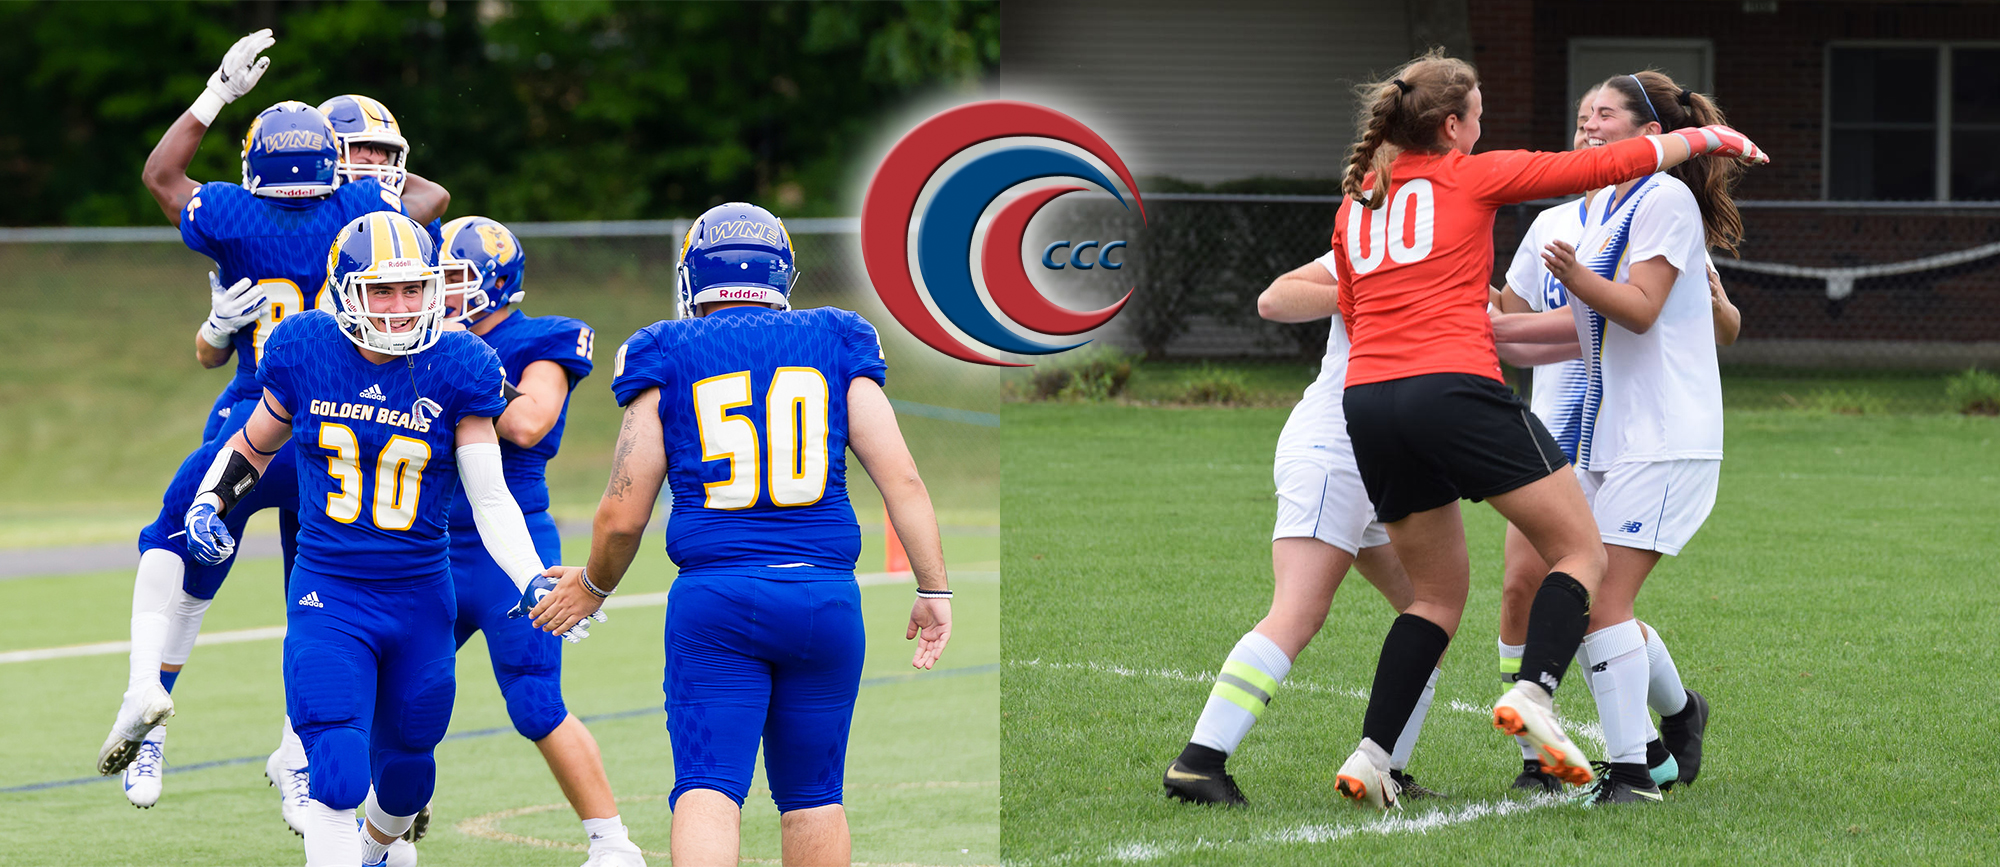 WNE Women in 5th Place in CCC All-Sport Trophy Standings Through Fall Season; Men in 6th